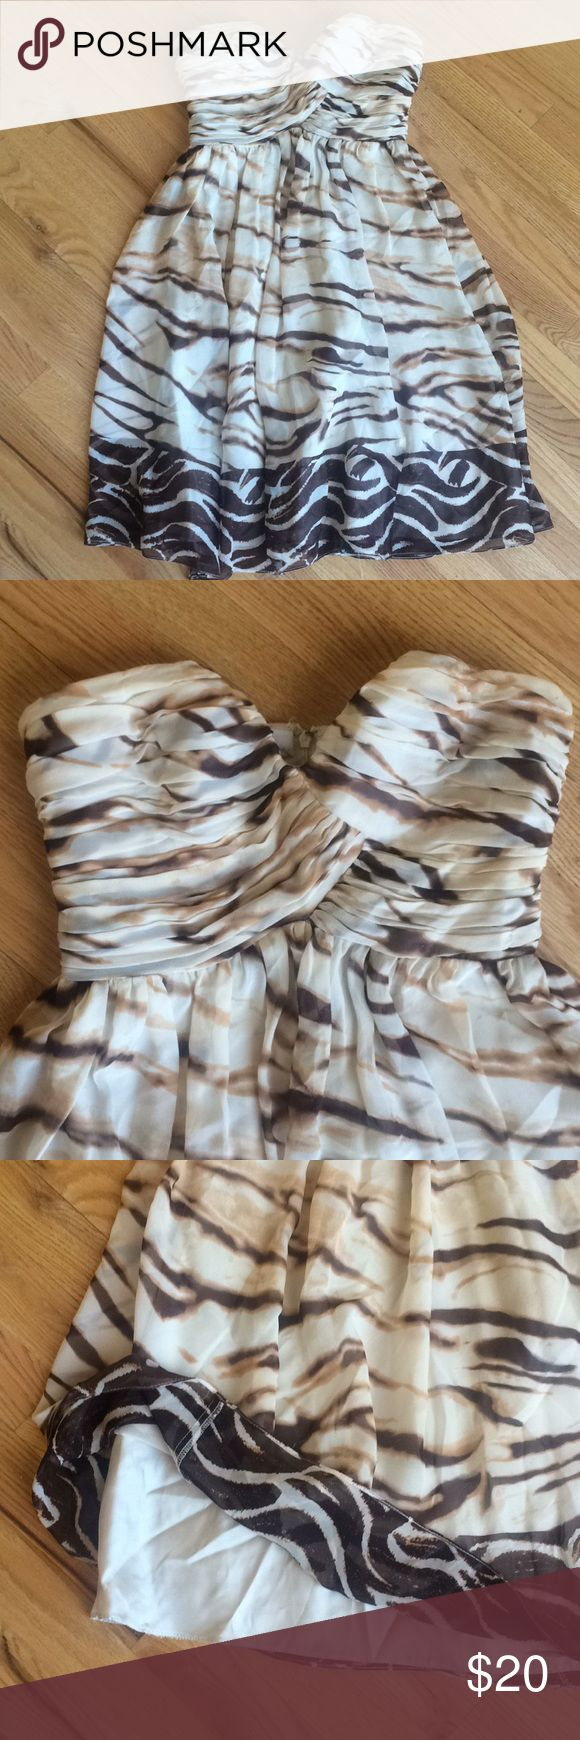 Tan Printed Silk Dress size 2 The perfect wedding guest dress made to dance all night 100% Silk Tan and brown shades Beautiful sweetheart neckline  Comes down to above the knee, depending on height   Size: 2 Condition: EUC Donna Morgan Dresses Strapless